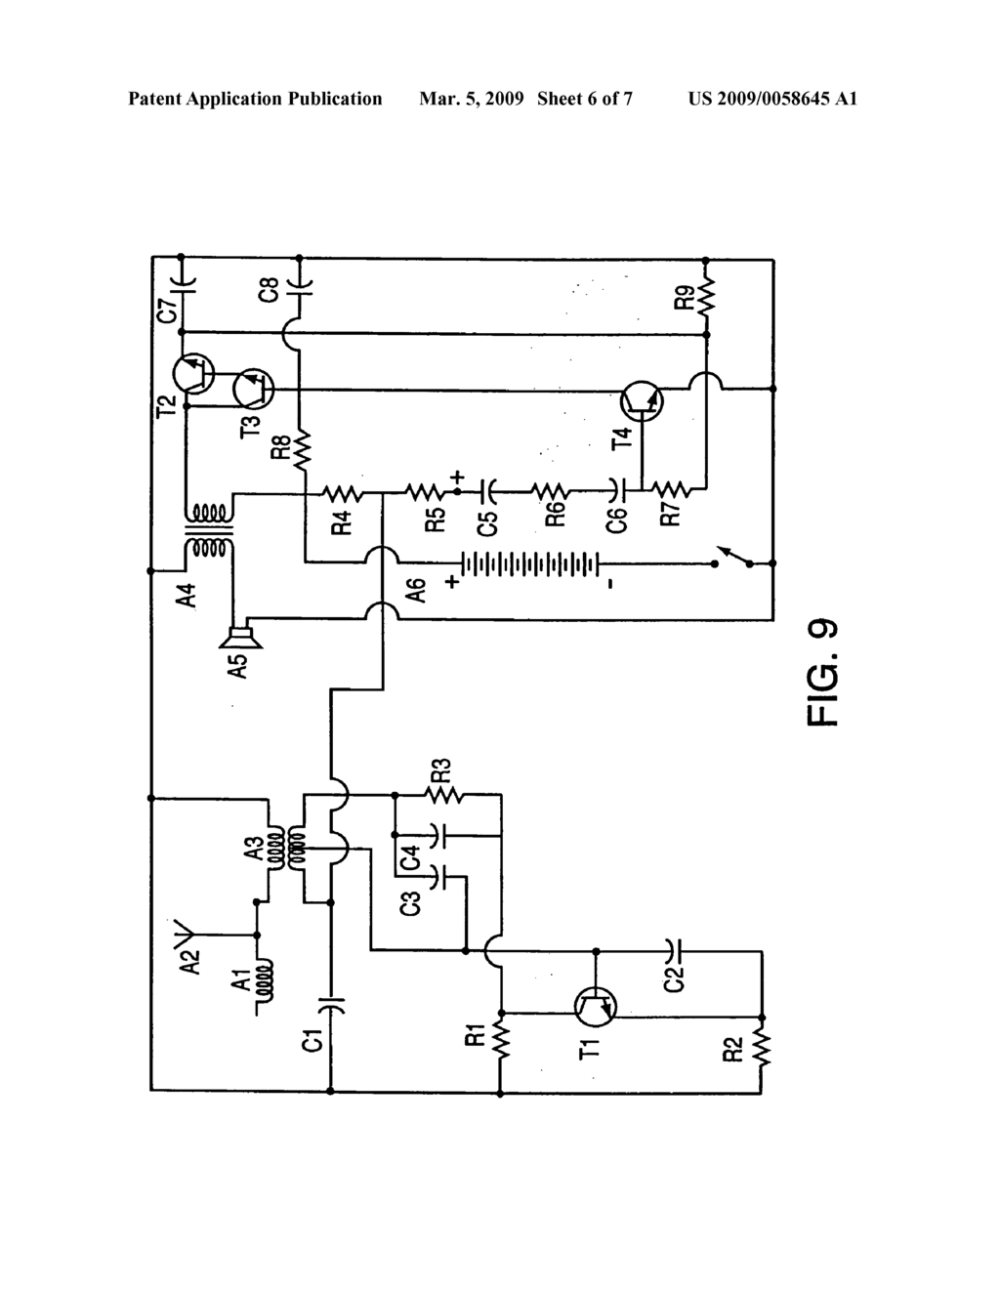 medium resolution of electronic lock out tag out safety device diagram schematic and image 07